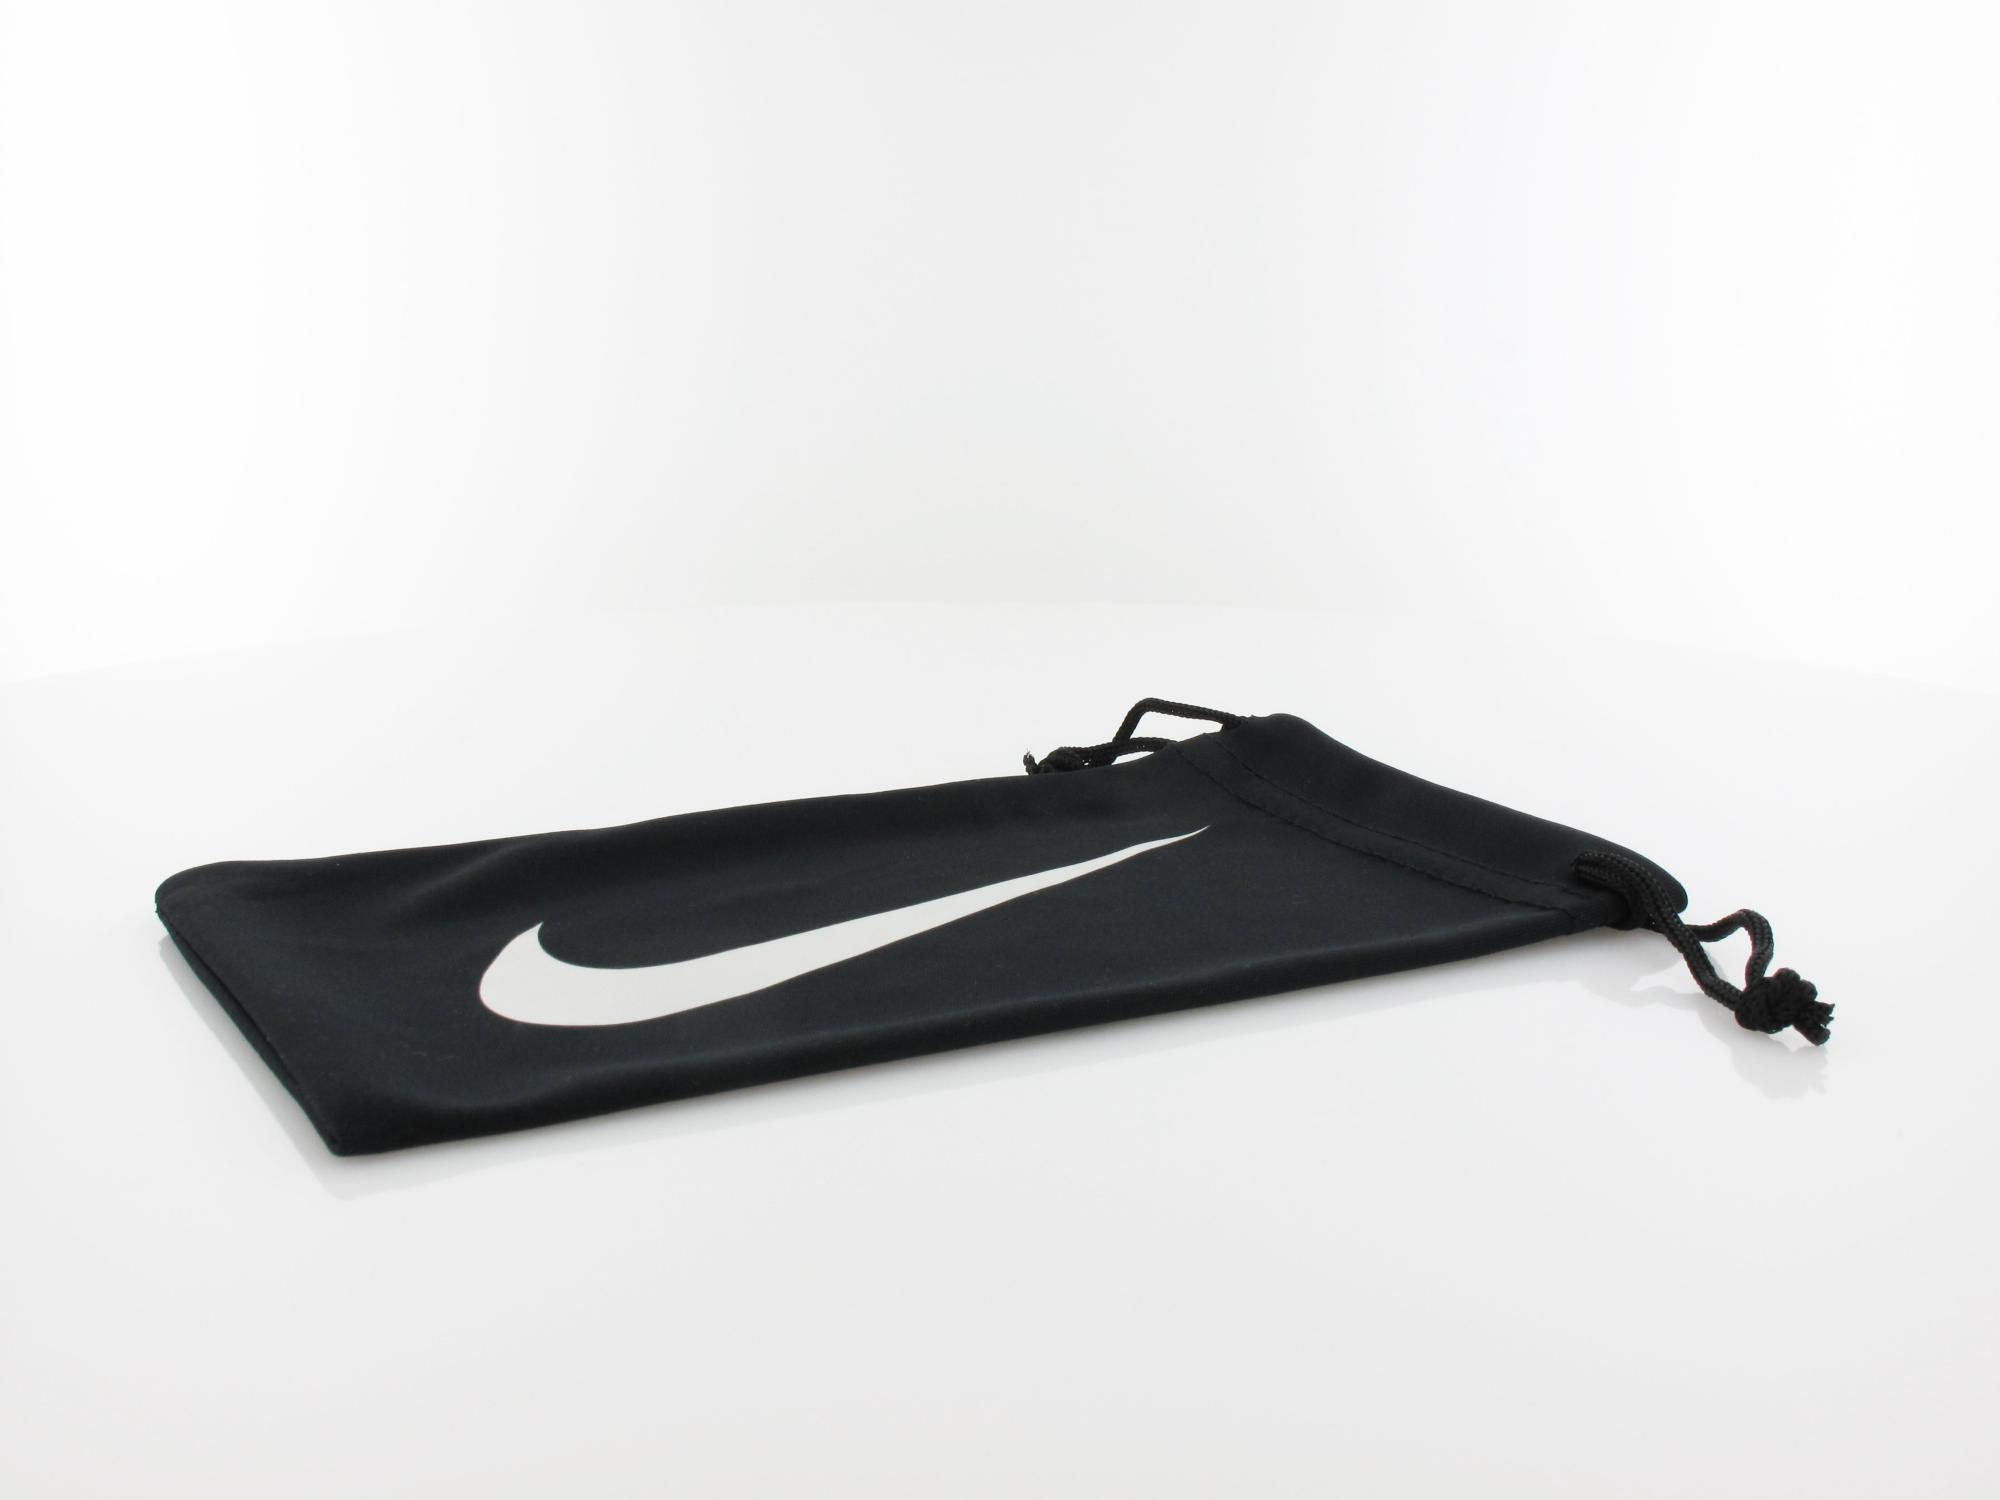 Nike | RABID P EV1111 010 64 | matte black / polar grey green mirror